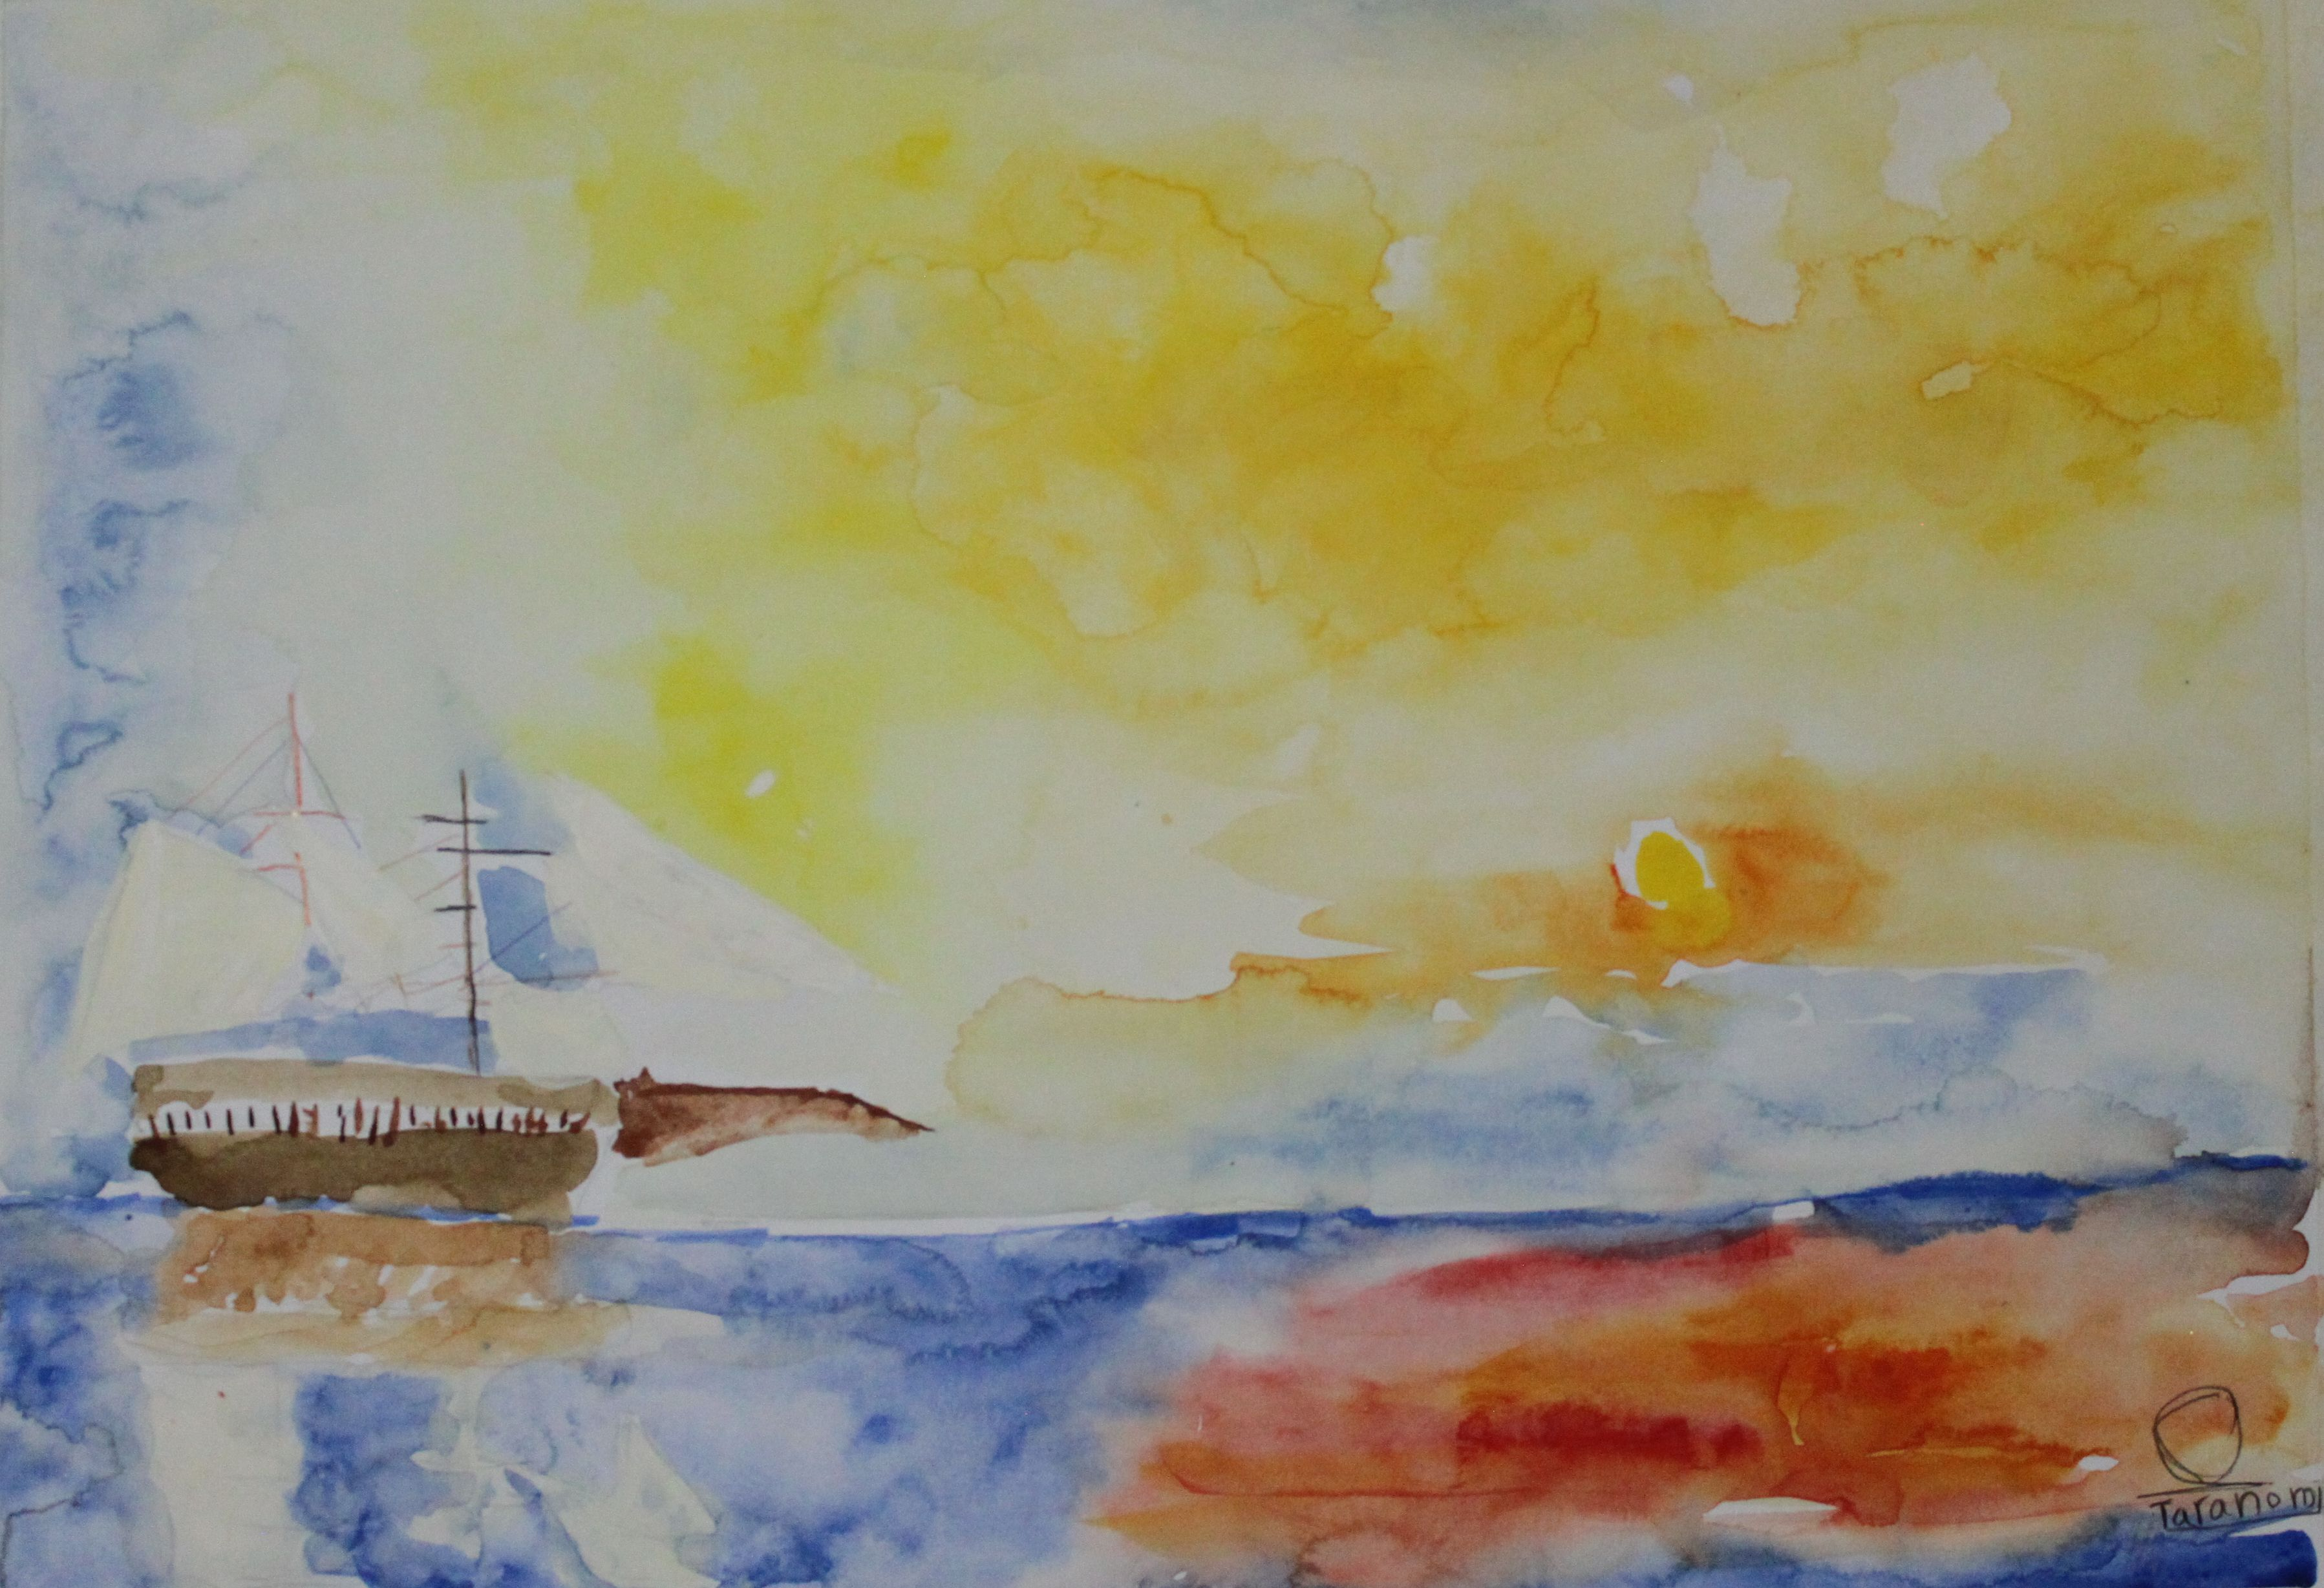 Taranom, aged 9, inspired by Joseph Mallord William Turner, 'The Fighting Temeraire tugged to her last berth to be broken up'